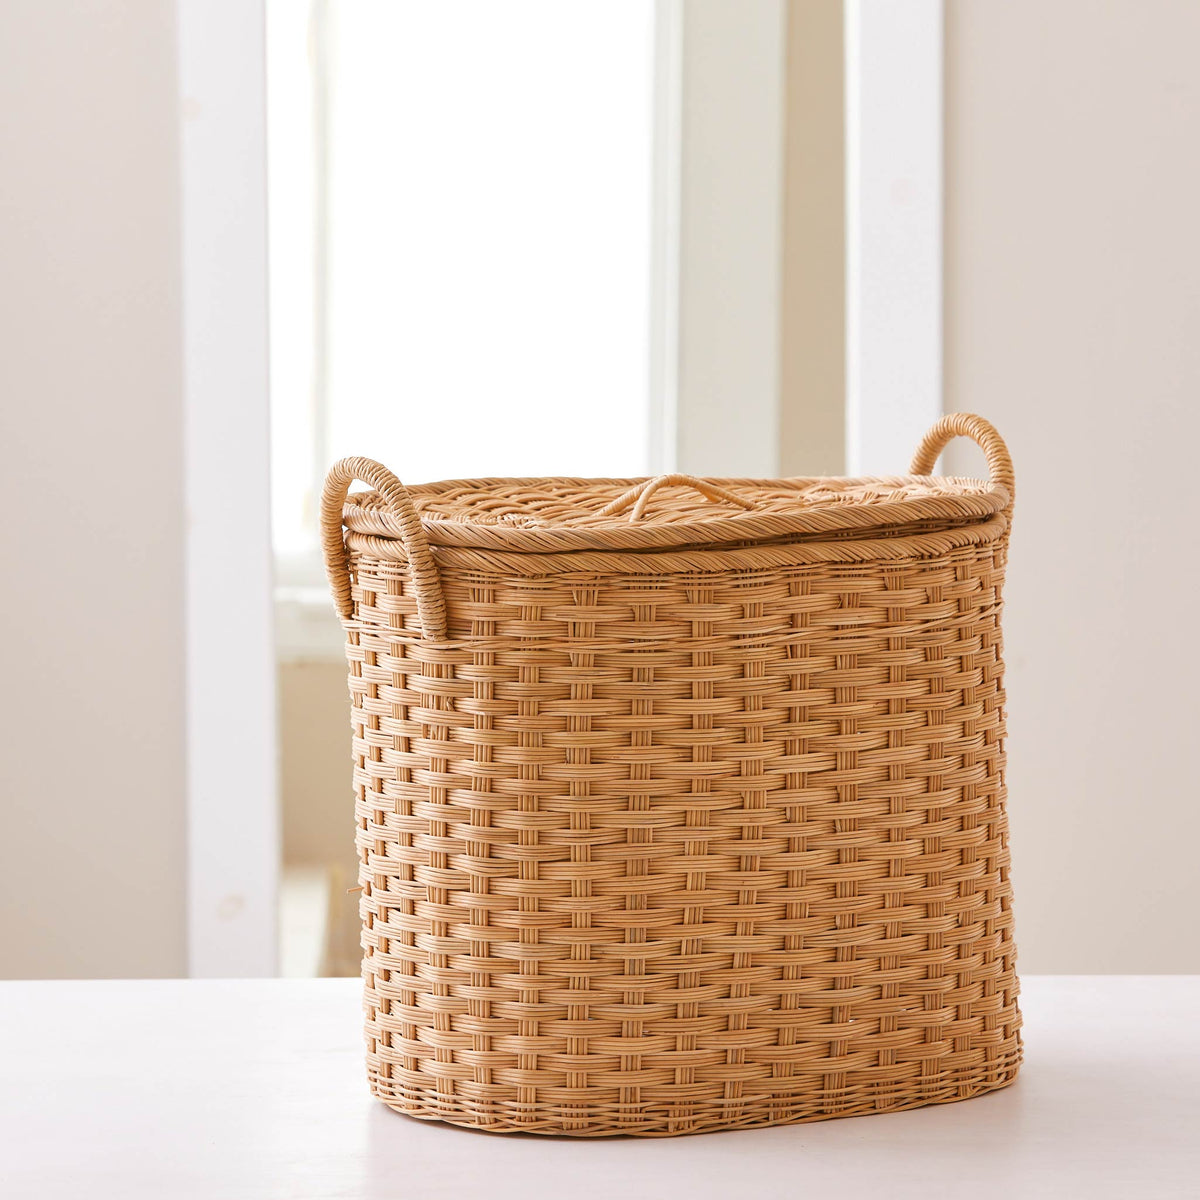 Oval rattan storage basket. Unique storage baskets with lids and handles. 5 sizes. Medium basket shown. Great basket for storage. XL, L, M, S, XS.